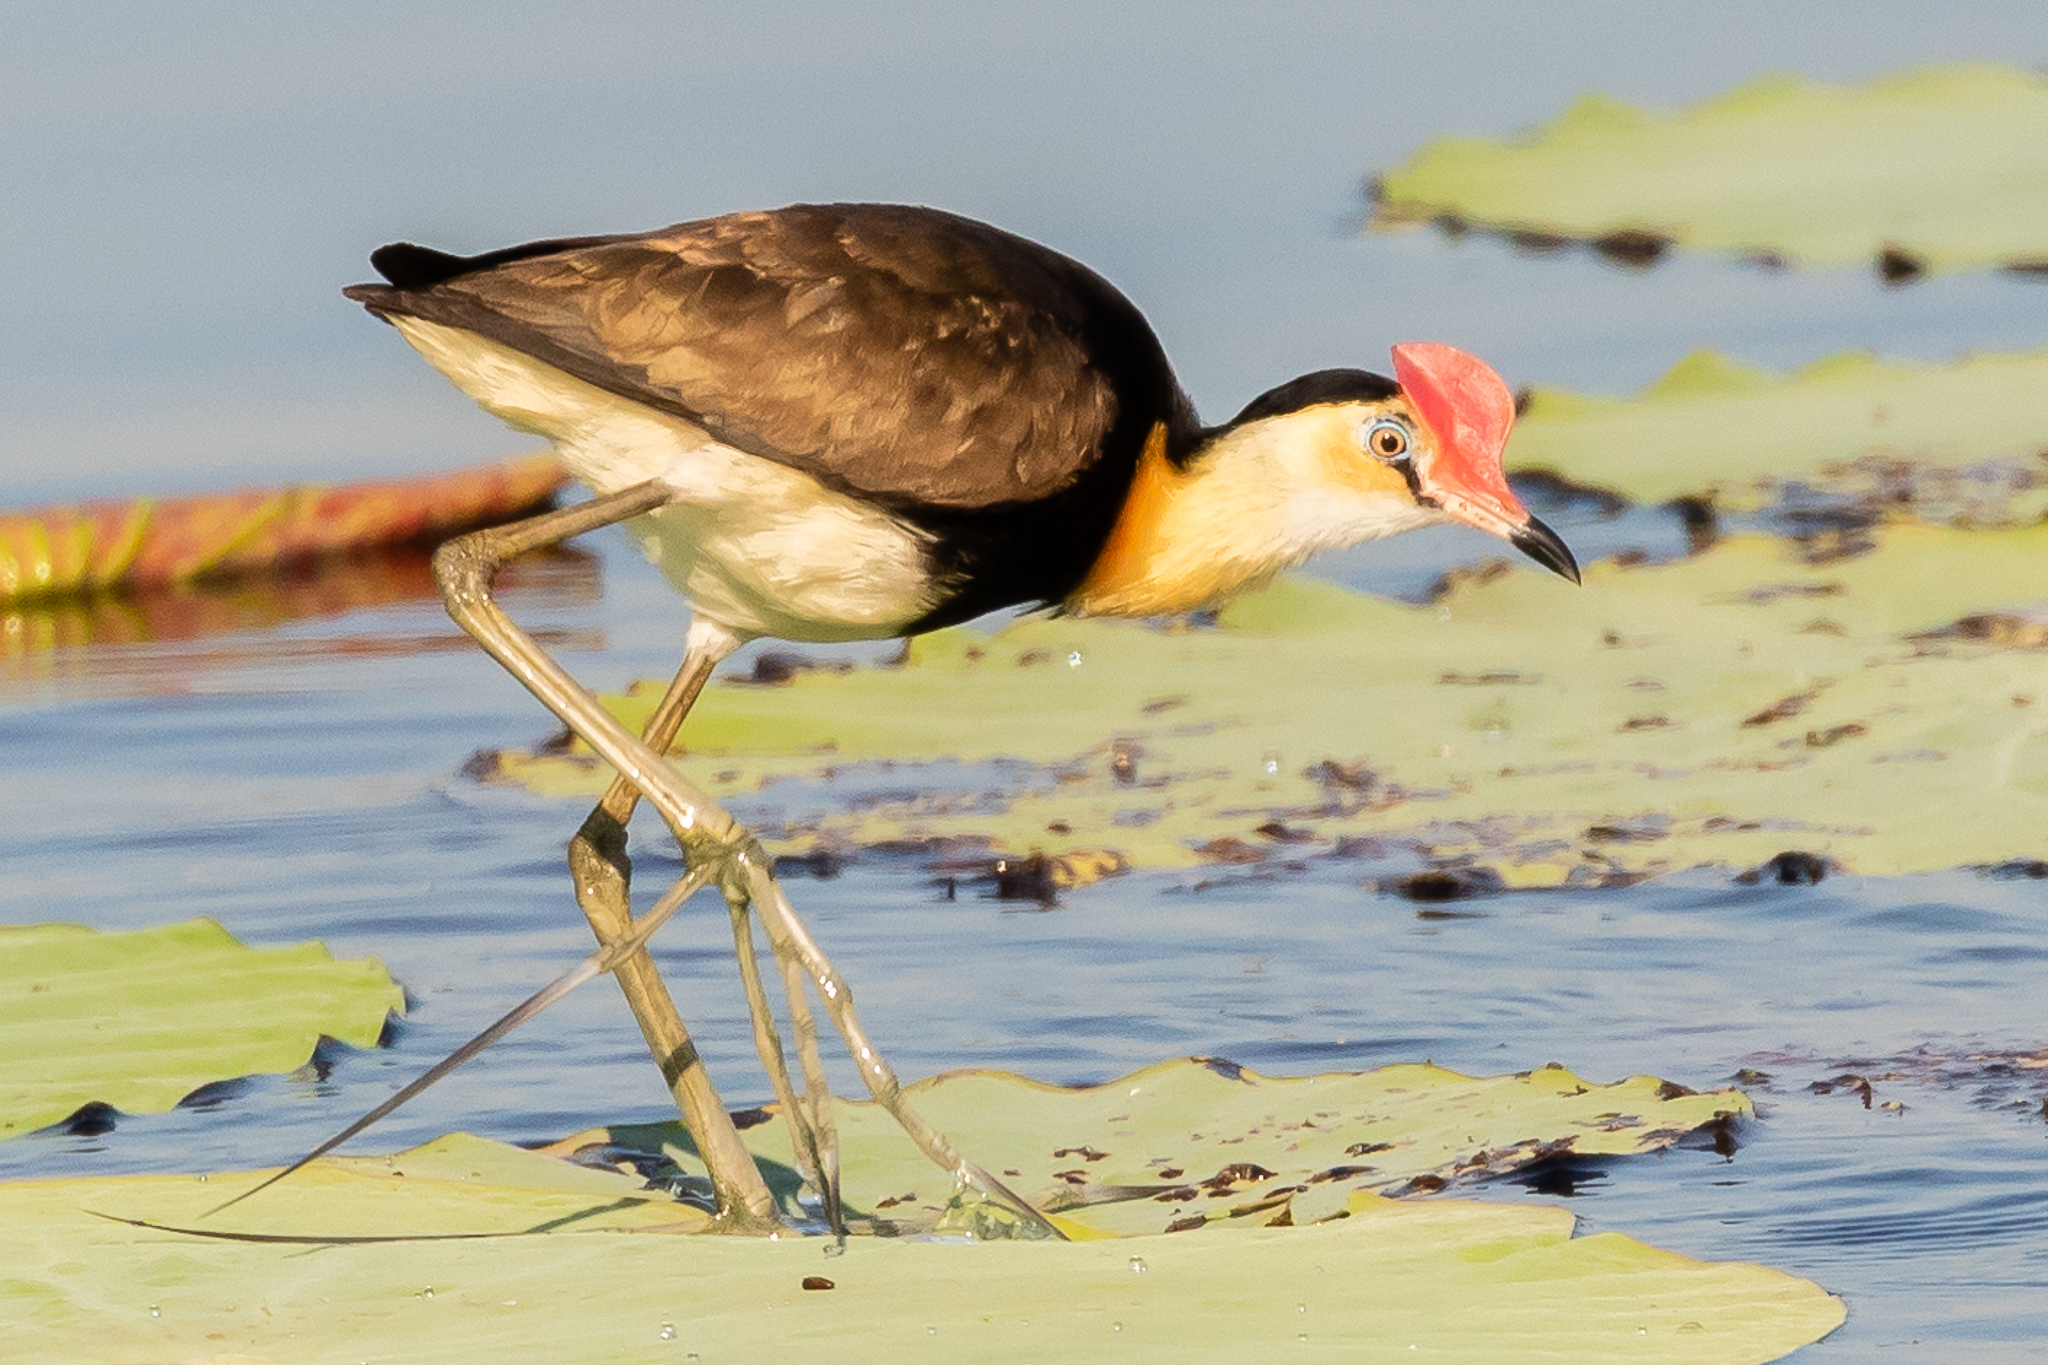 This Comb-crested Jacana was photographed at Fogg Dam, walking across lily-pads feeding on insects and vegetable matter.